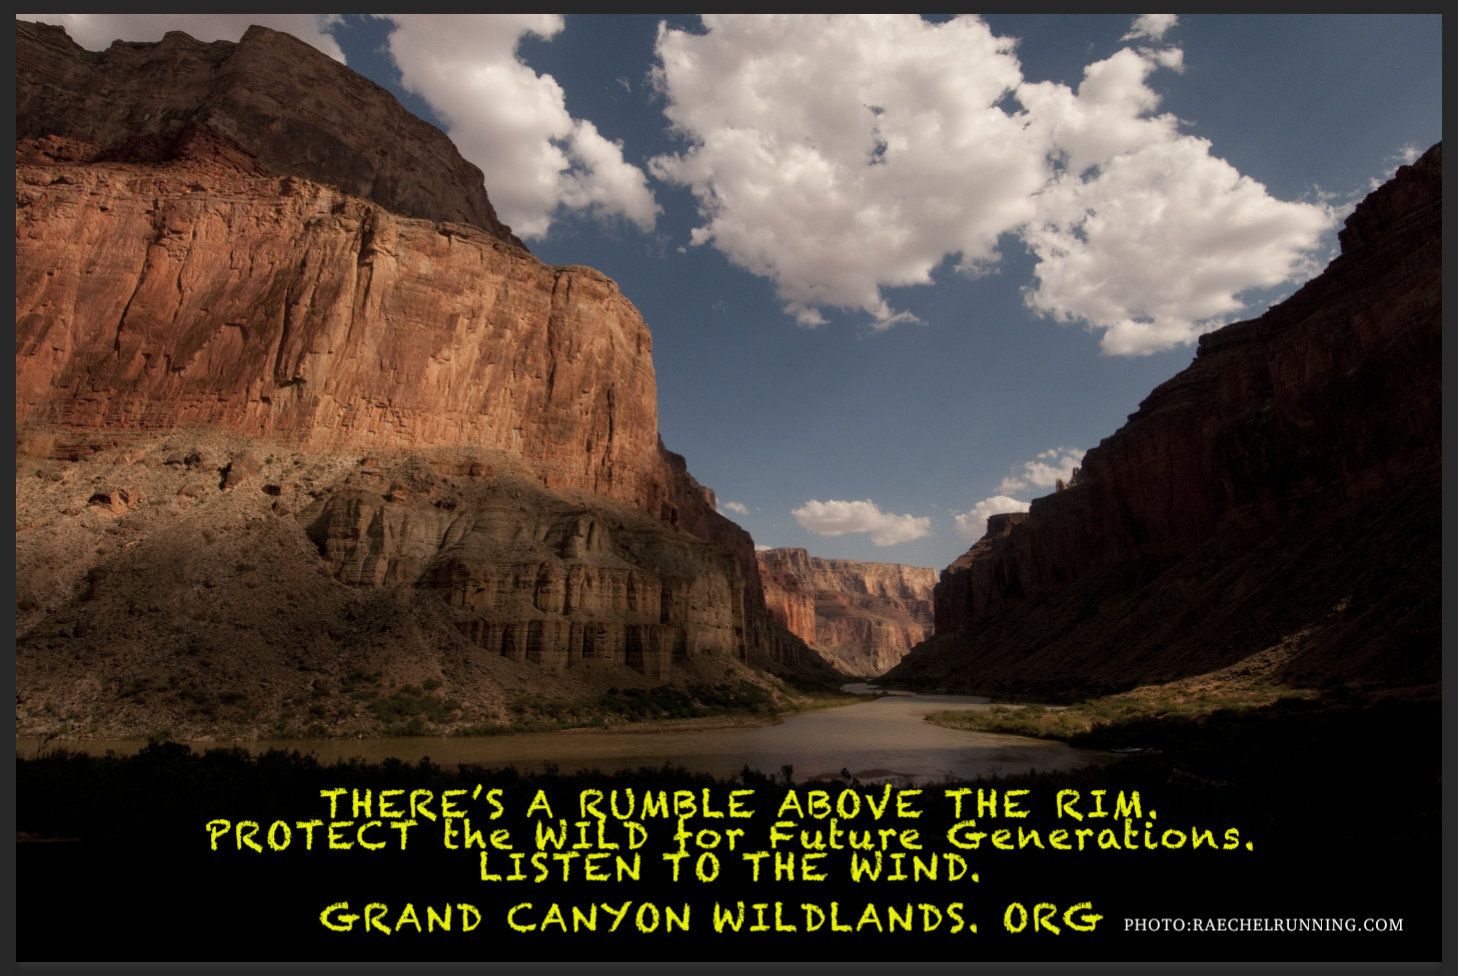 Protect our Greater Grand Canyon